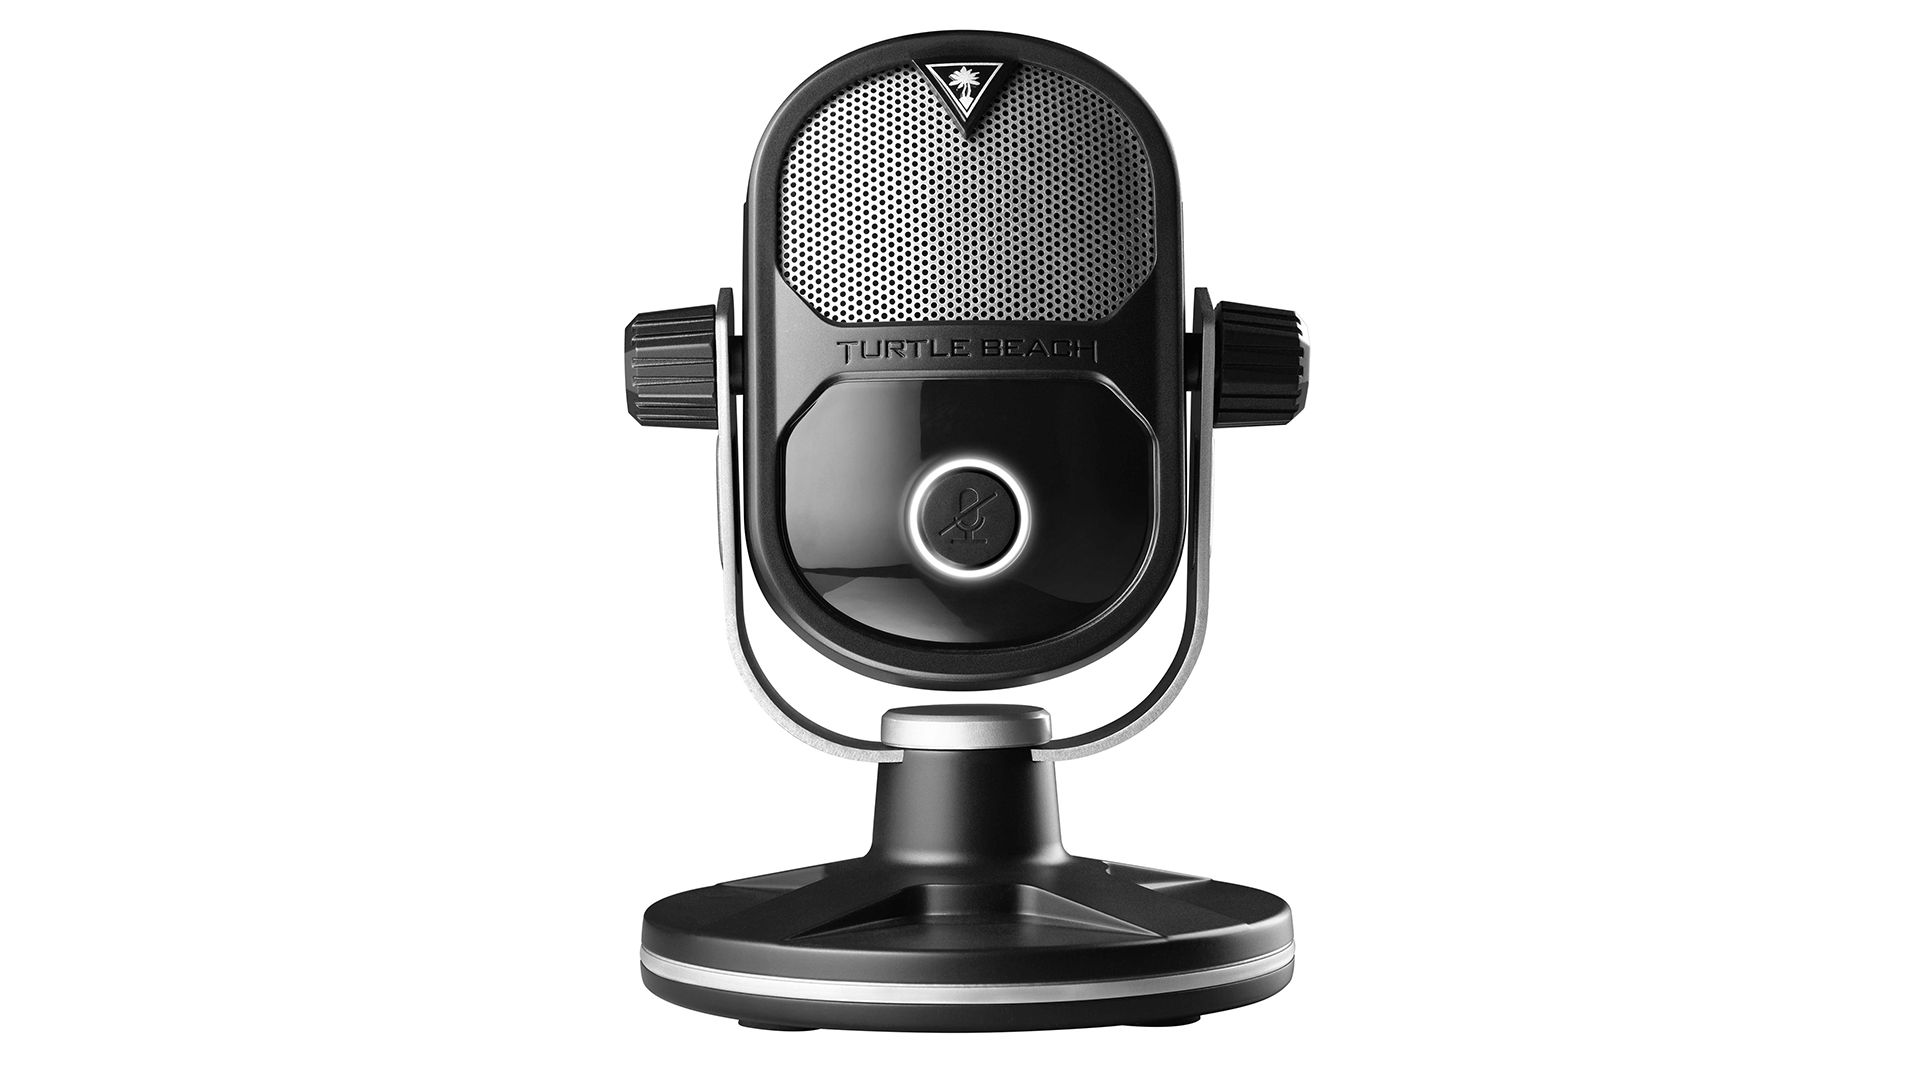 A ProGrade Mic Made For Console Streaming Turtle beach